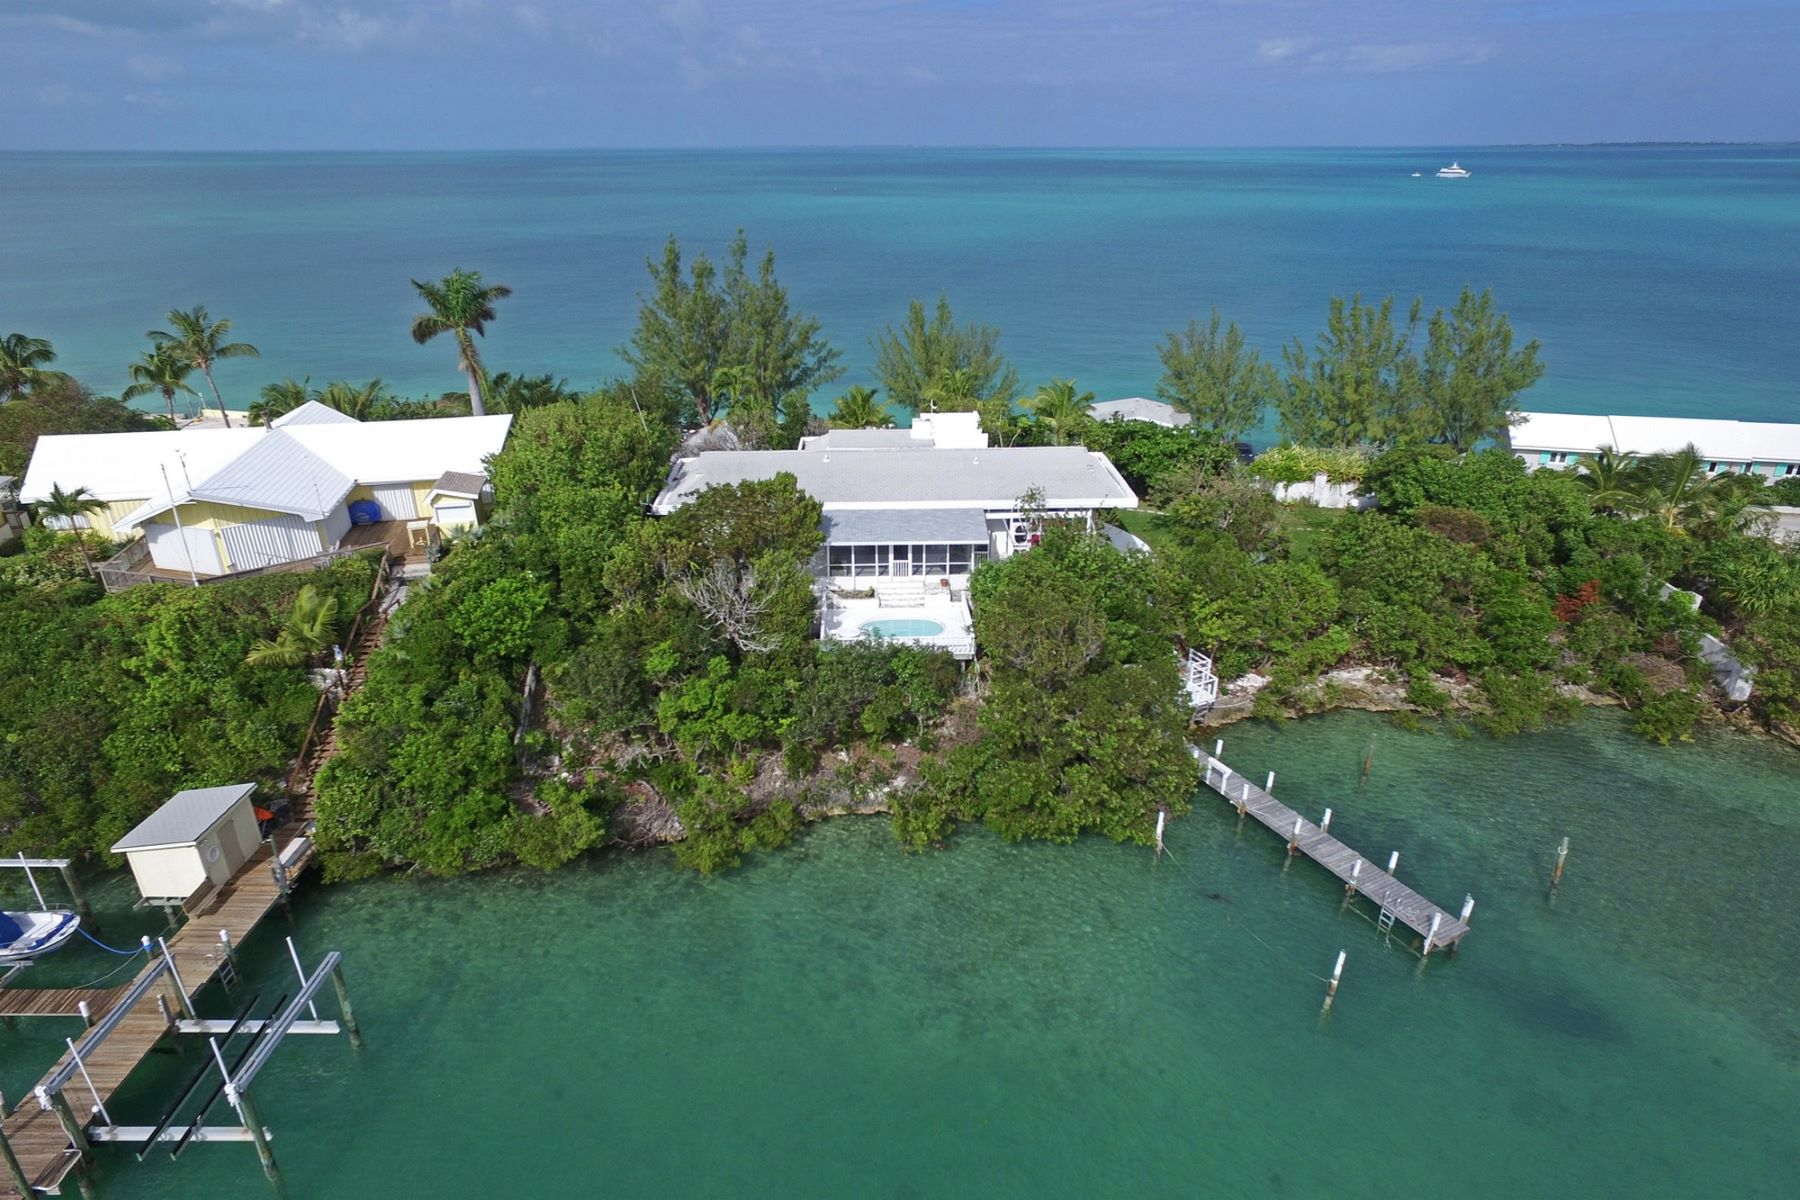 Single Family Home for Sale at Blue Dolphin Eastern Shores, Marsh Harbour, Abaco Bahamas